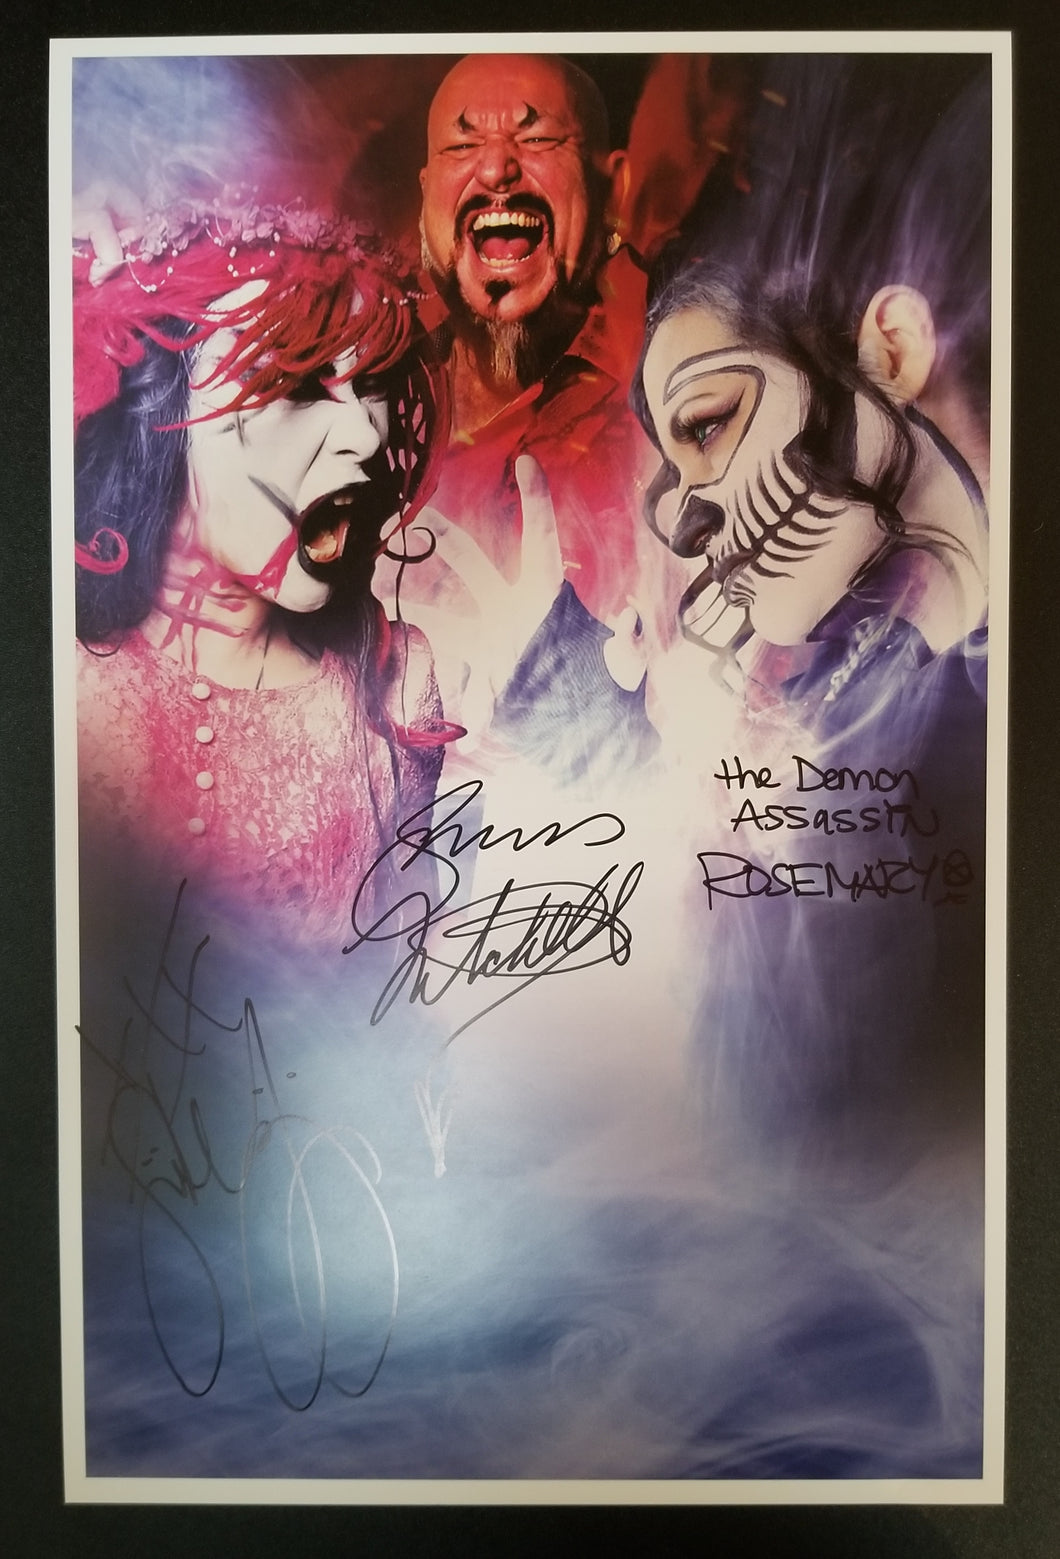 Dark War Limited Edition Autographed 11x17 Poster 1/13